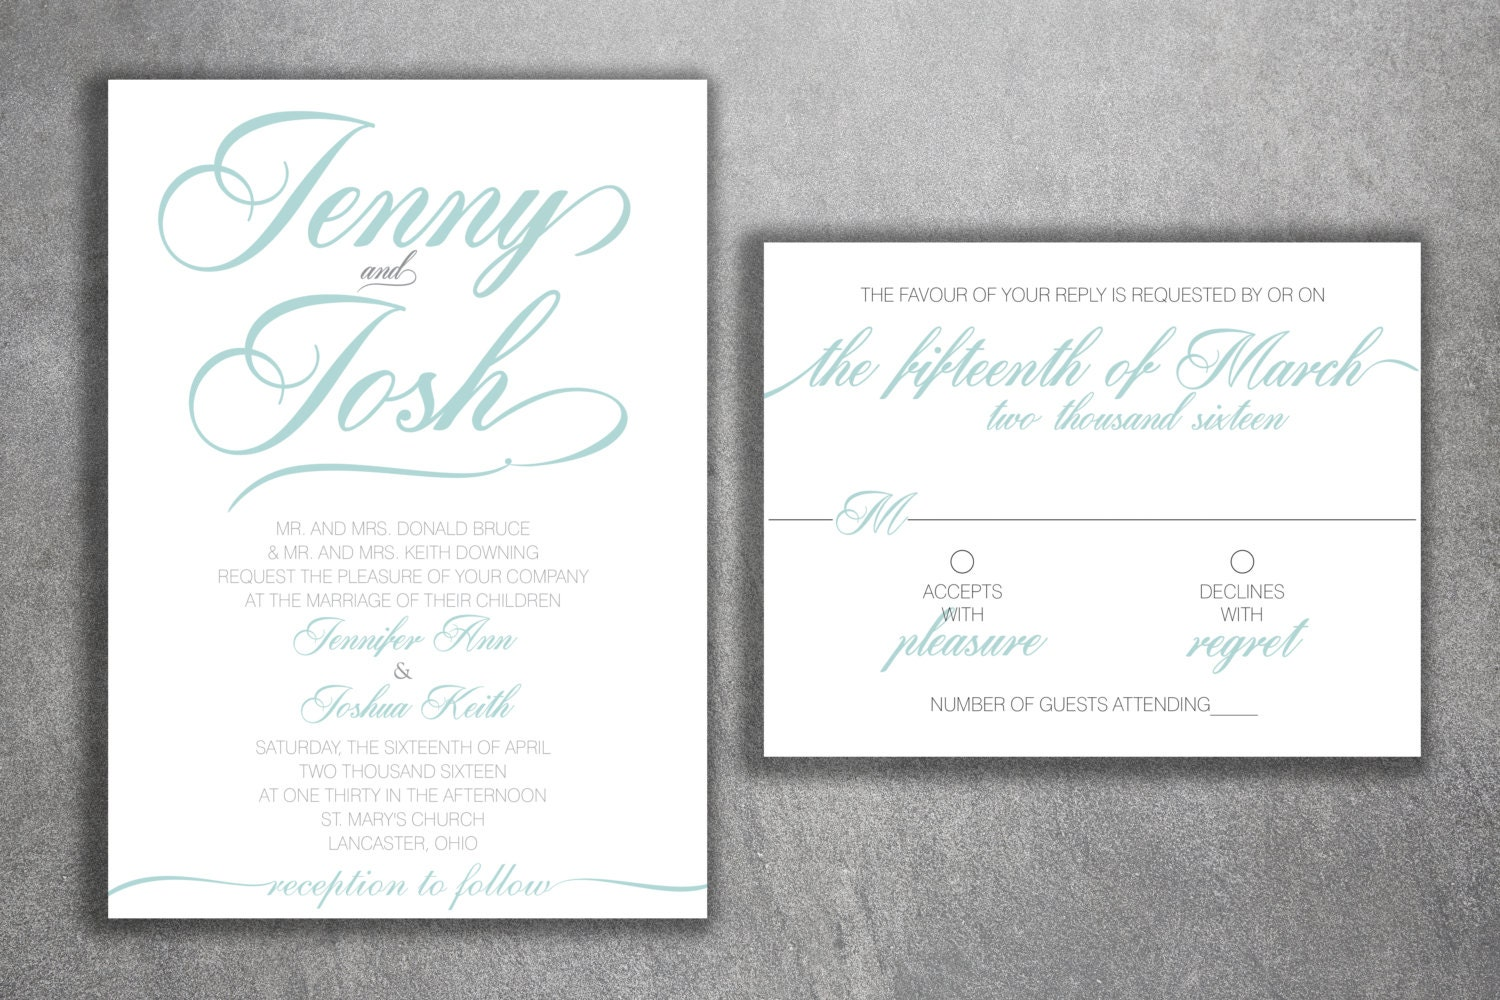 Cheap Wedding Invites Online: Affordable Wedding Invitations Set Cheap Wedding Invitations